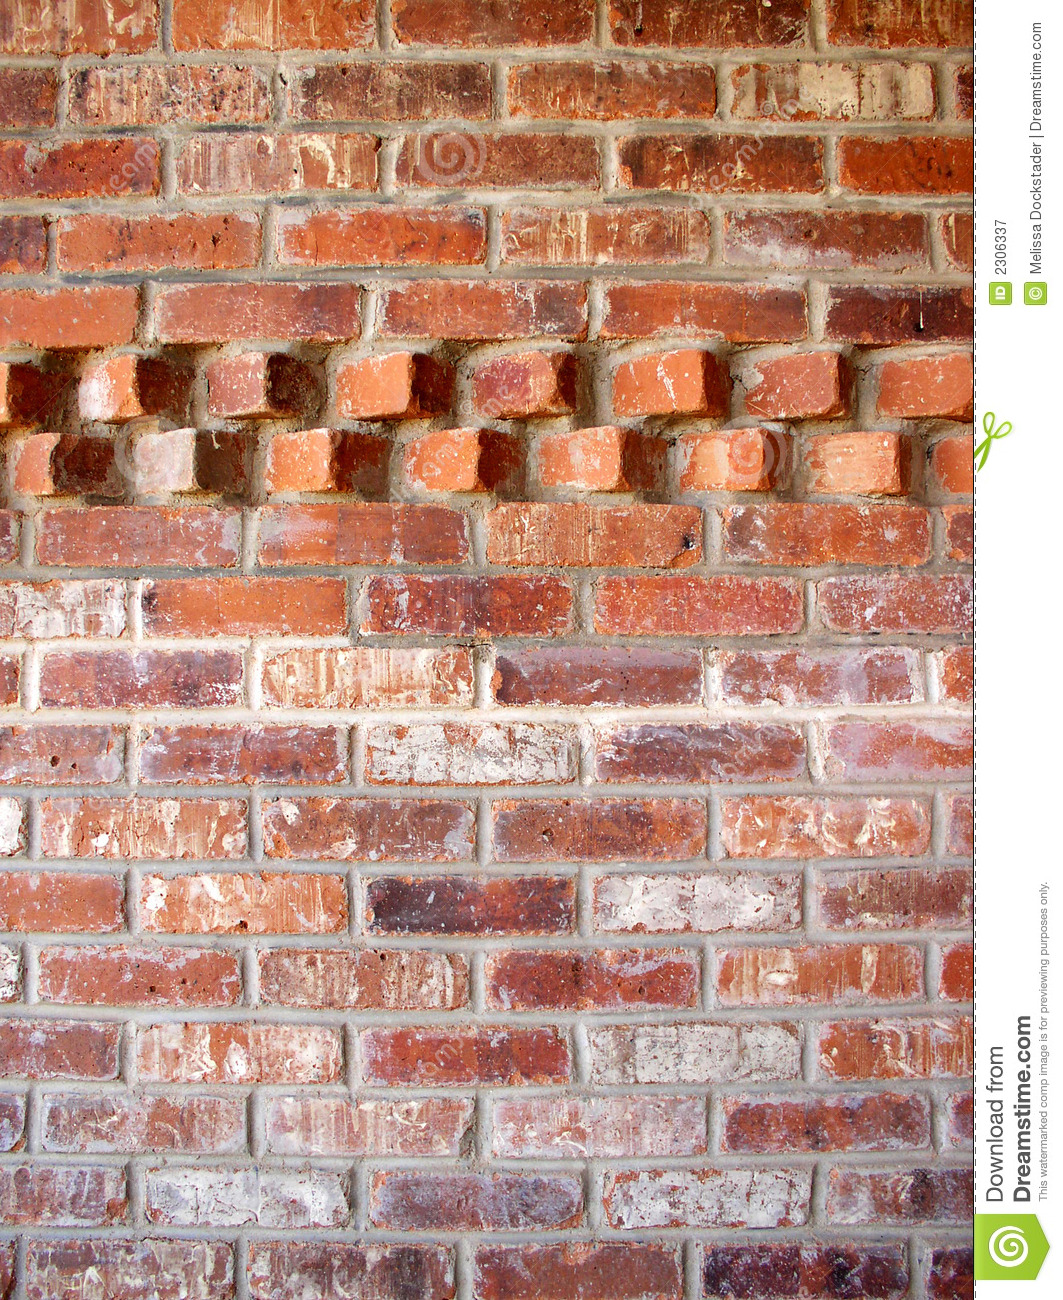 patterns on brick walls - photo #11